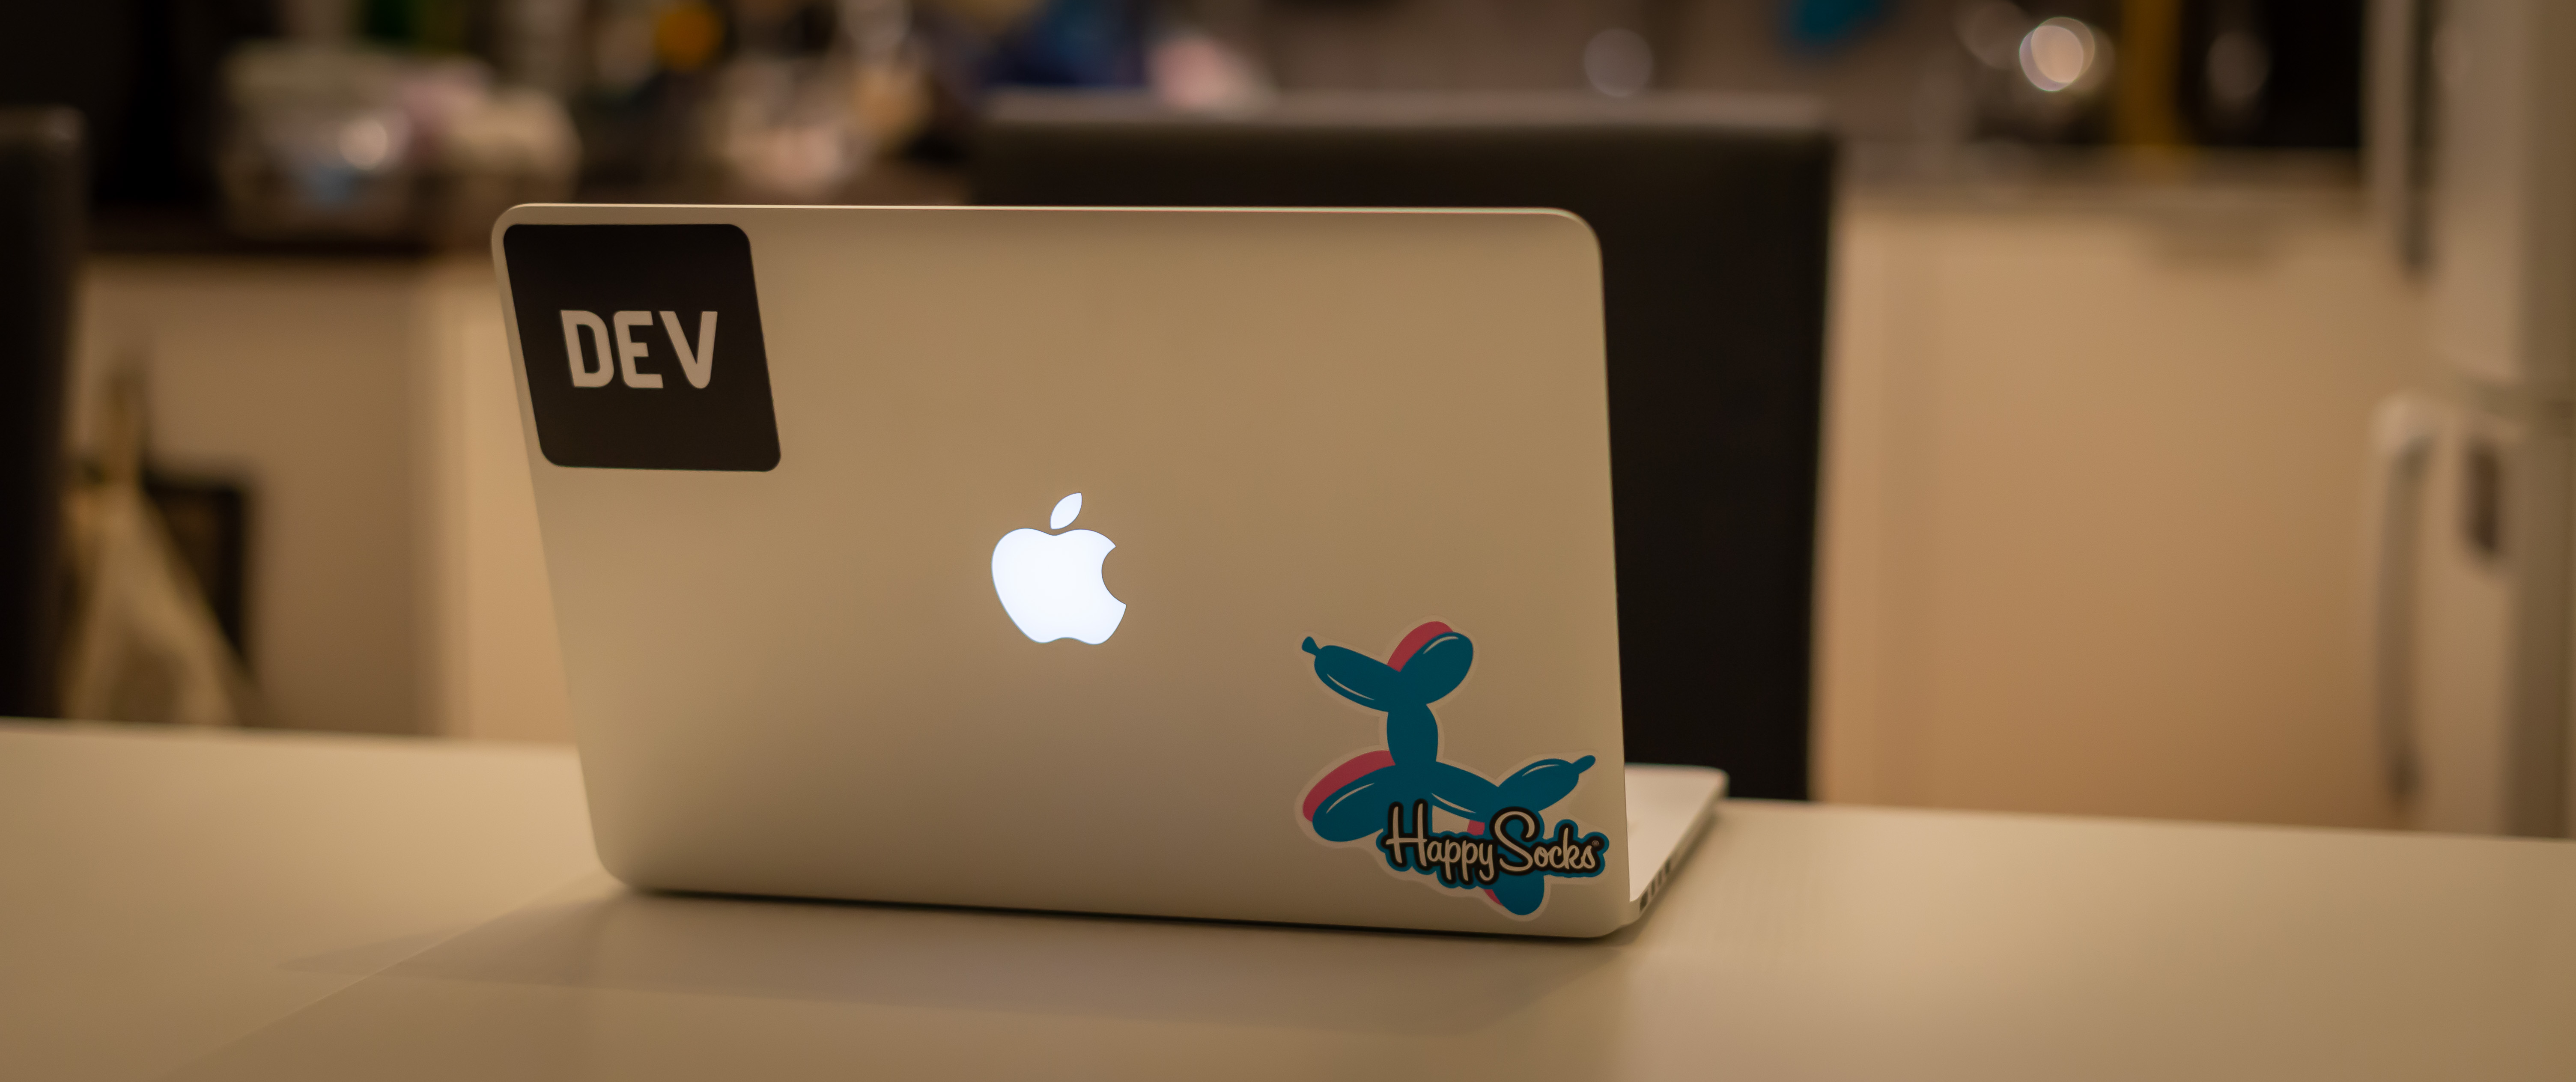 Photo of the laptop I'm writing about in this post